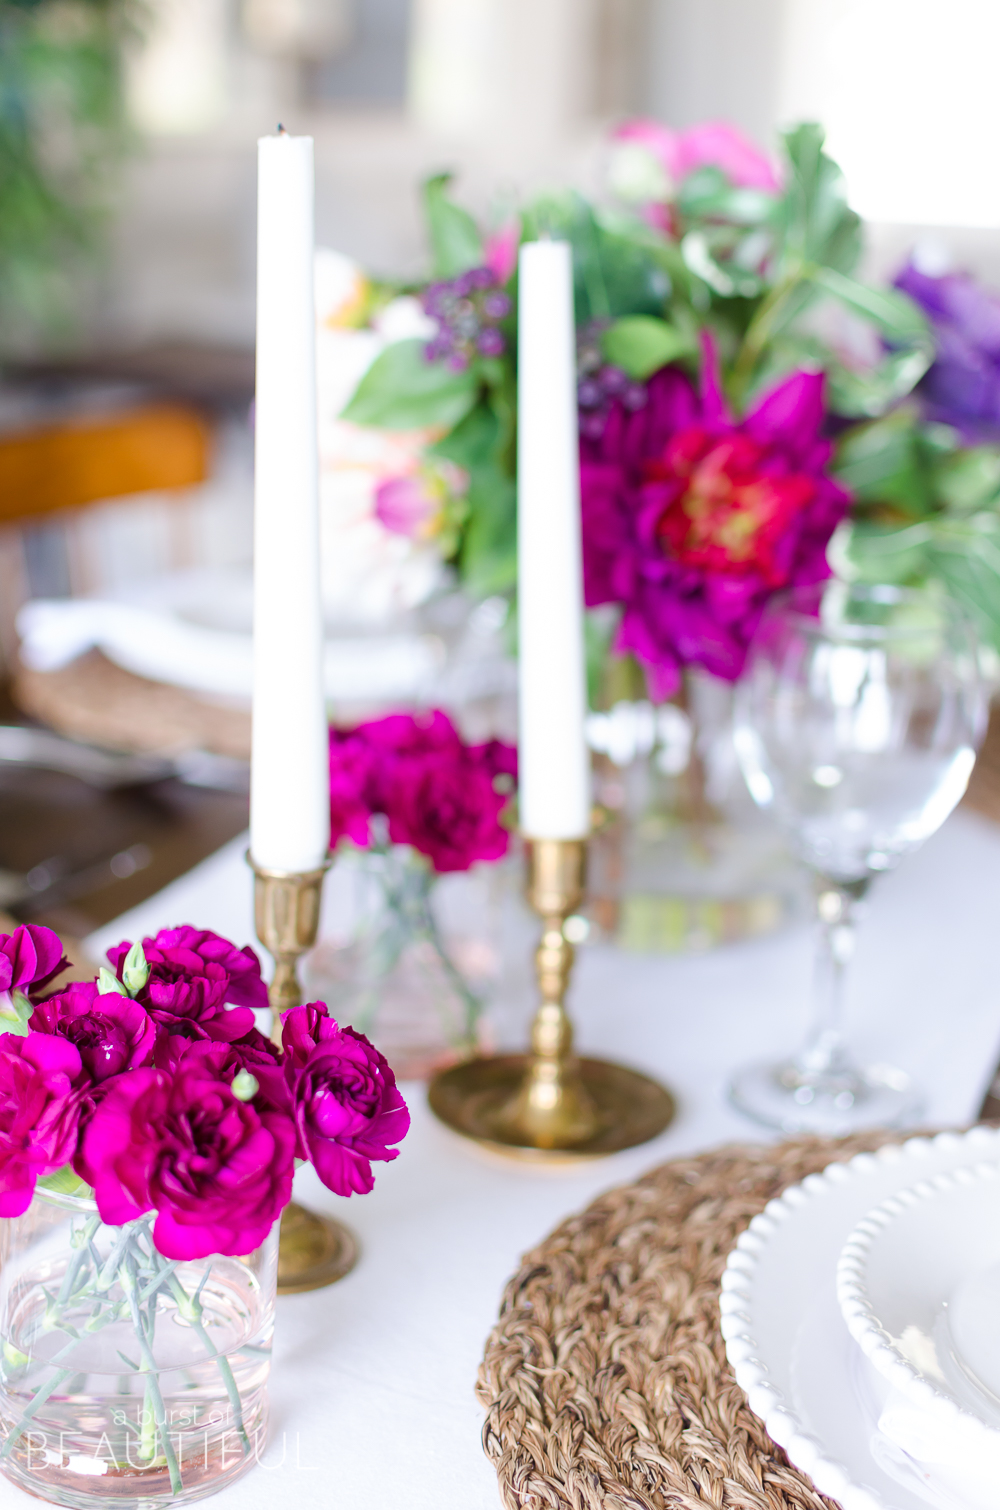 Celebrate with a simple and vibrant Mother's Day table setting